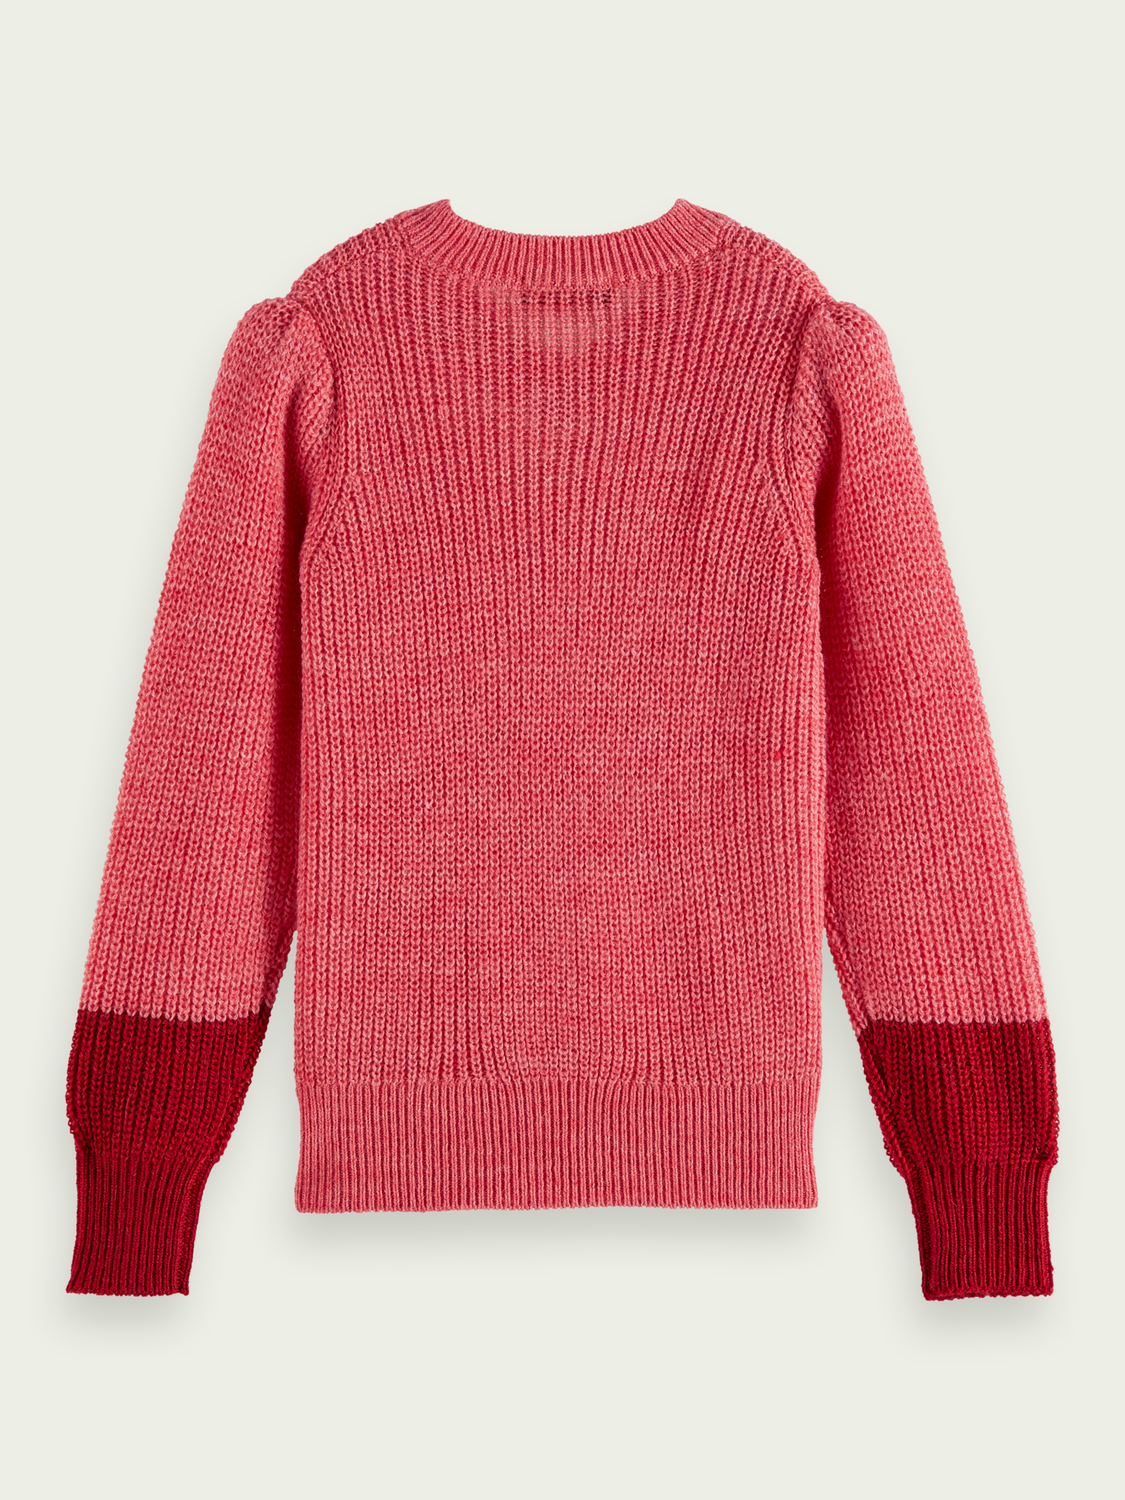 Kids Alpaca-wool blend rib knit jumper